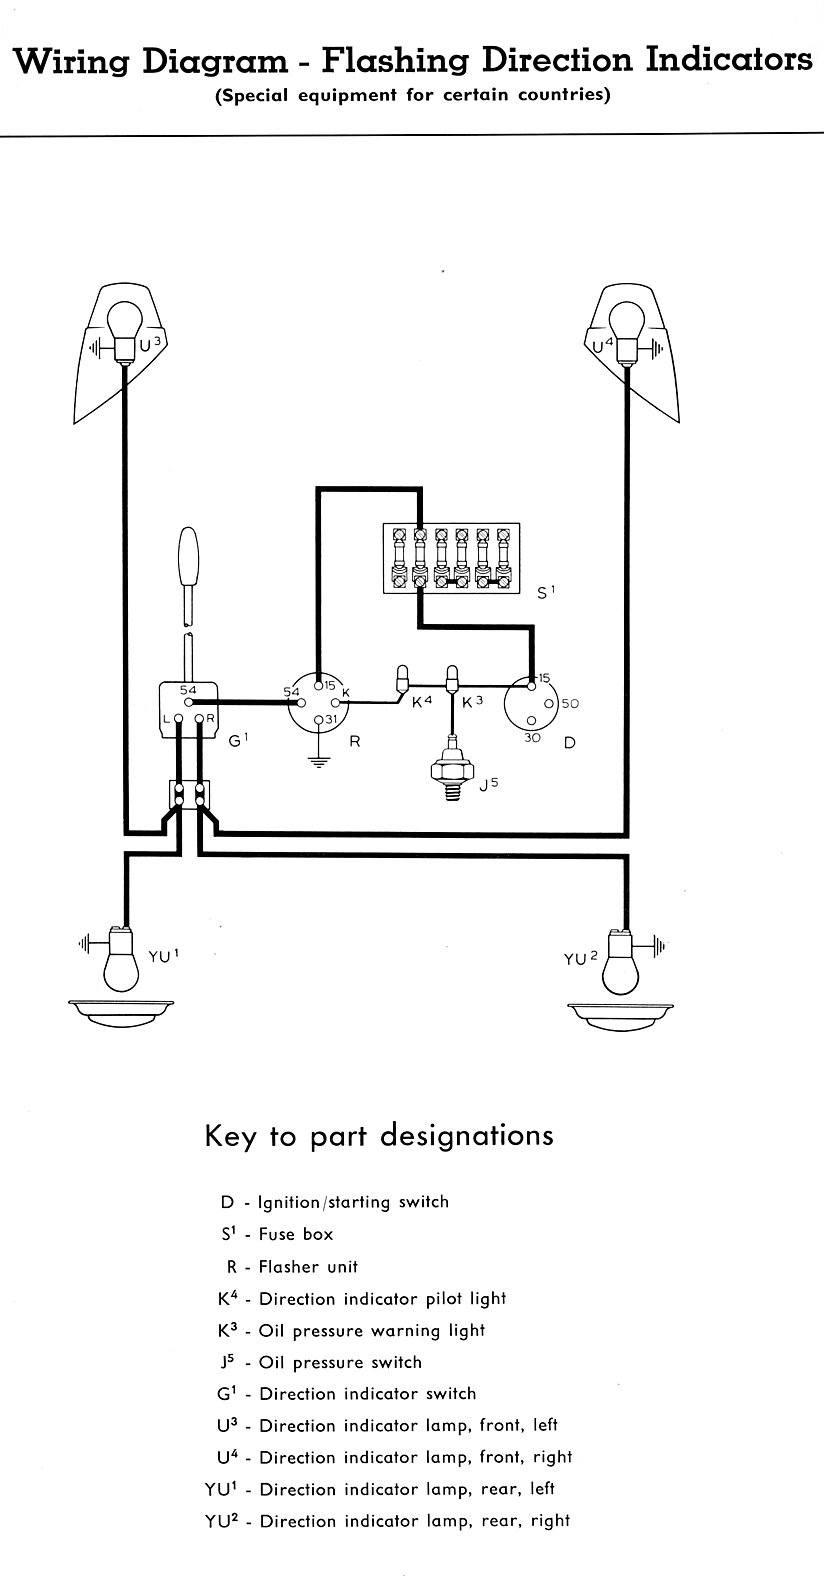 Flasher Universal Turn Signal Switch Wiring Diagram from www.thesamba.com